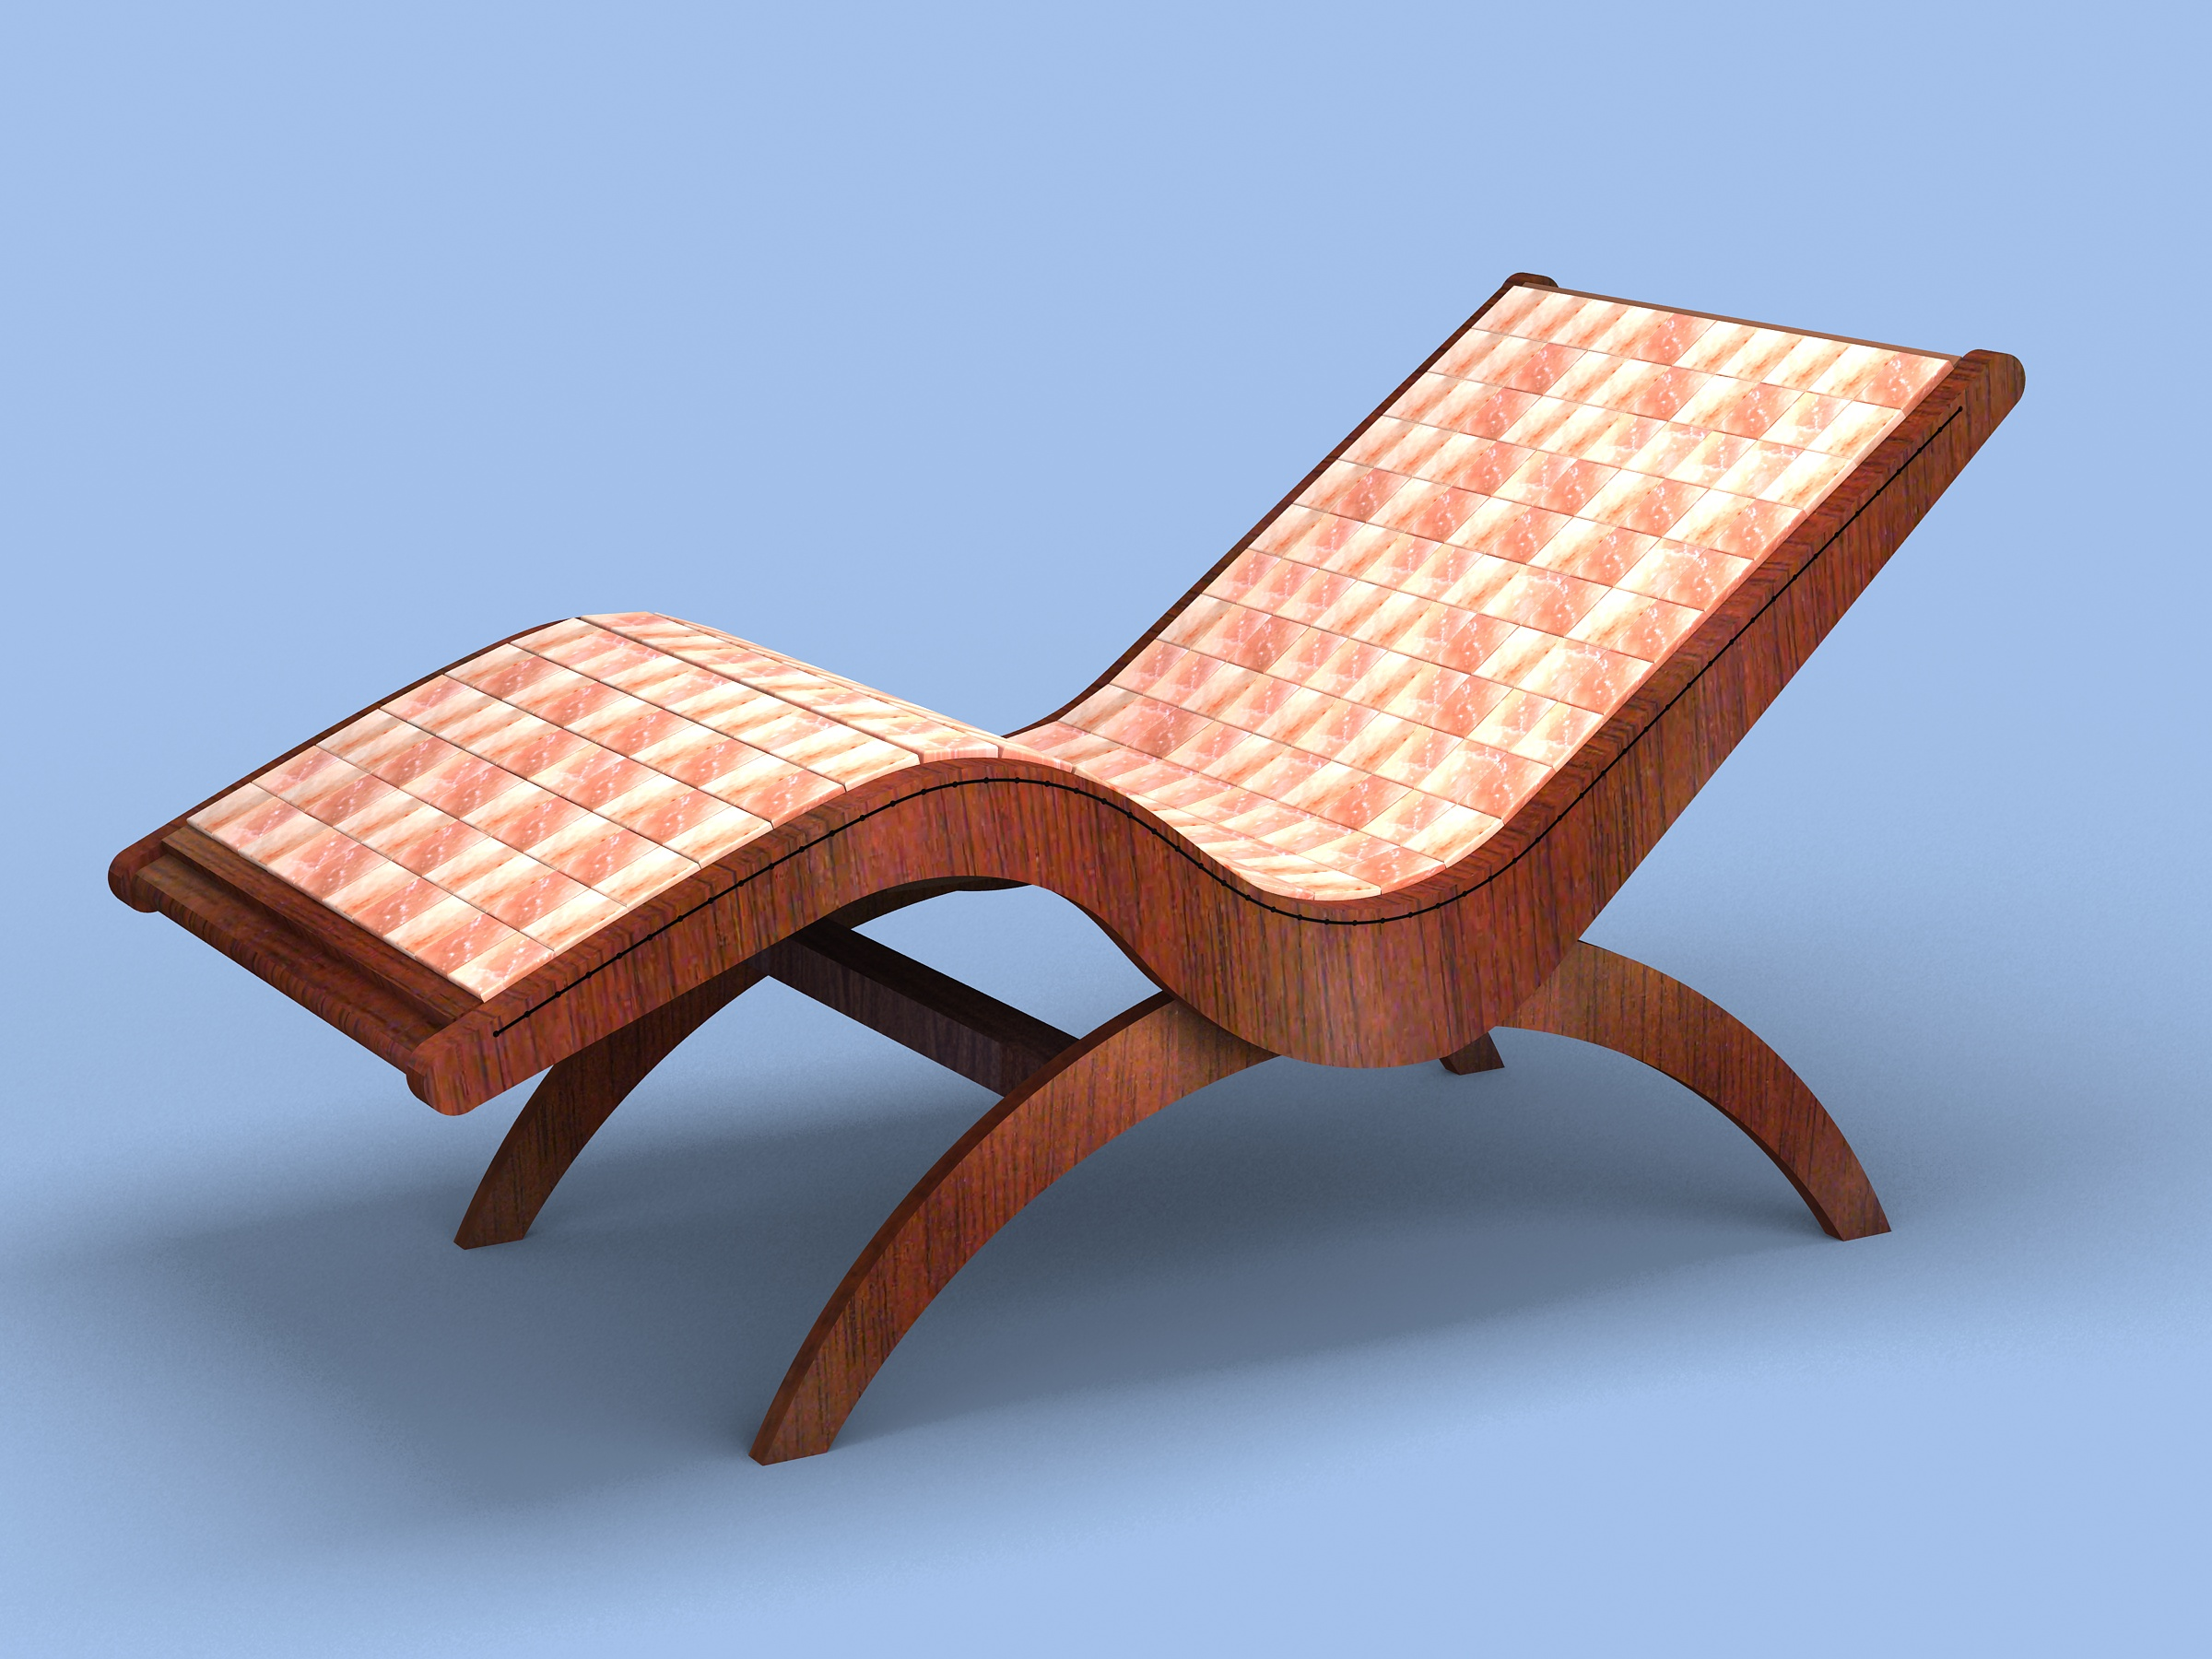 Salt Chair Innovative New Himalayan Salt Concepts For Spas And Home